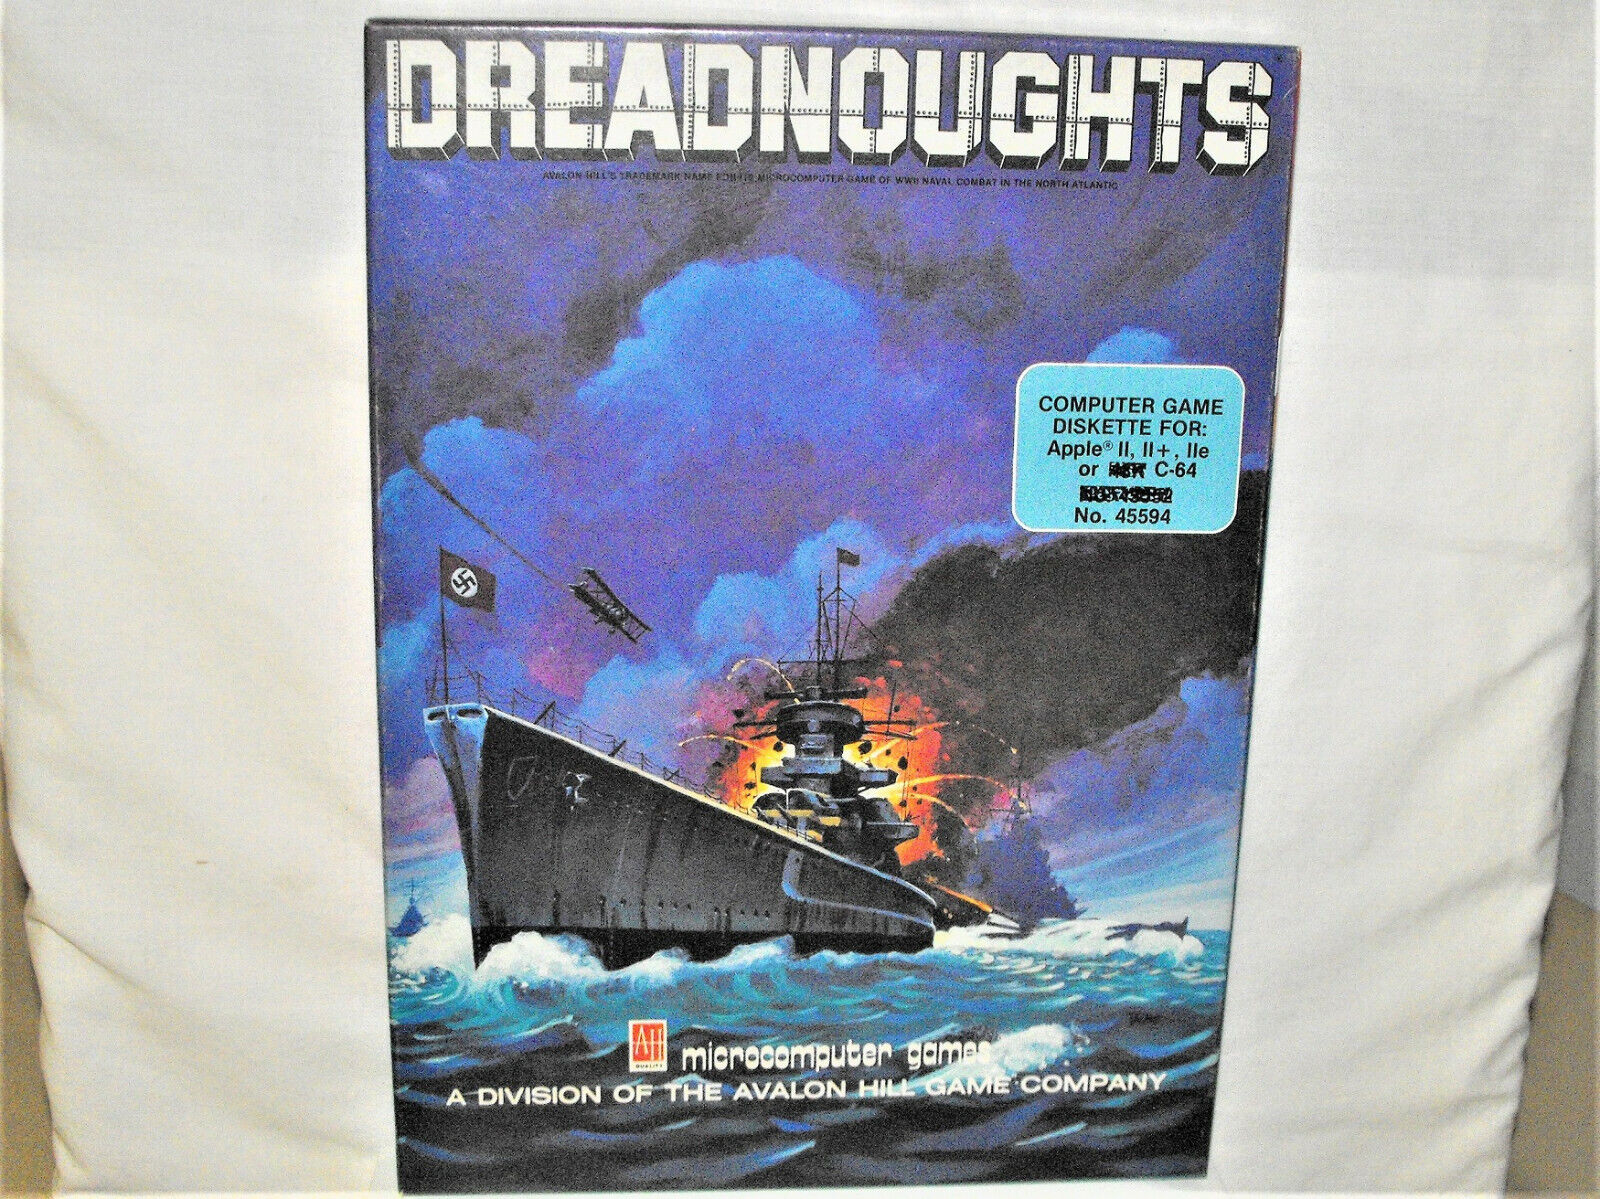 Computer Games - Commodore 64 Apple II Computer Game DREADNOUGHTS Avalon Hill Disk Box Papers NR